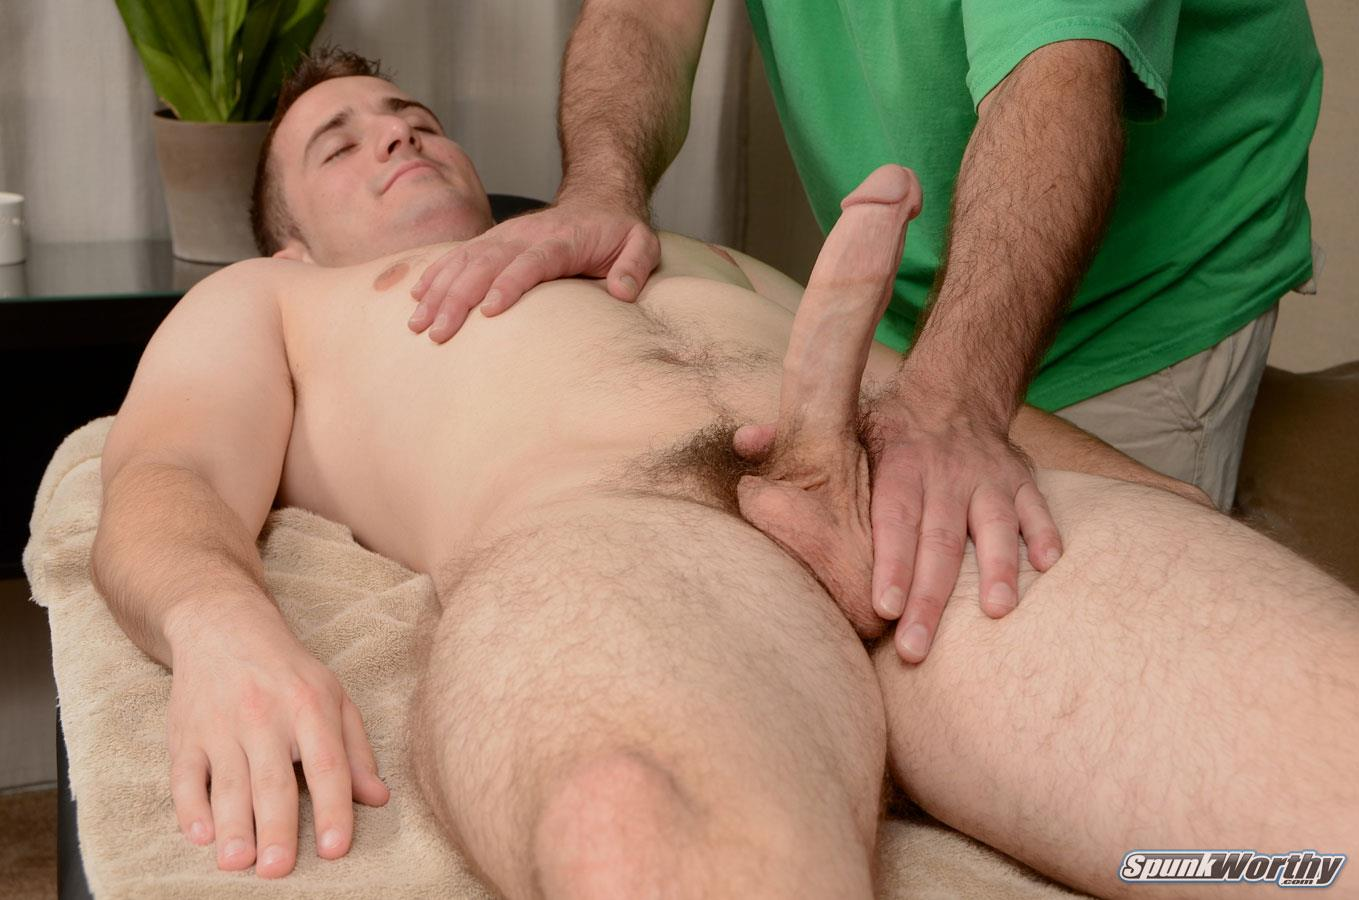 Straight Guy Gives Brain To Masseur